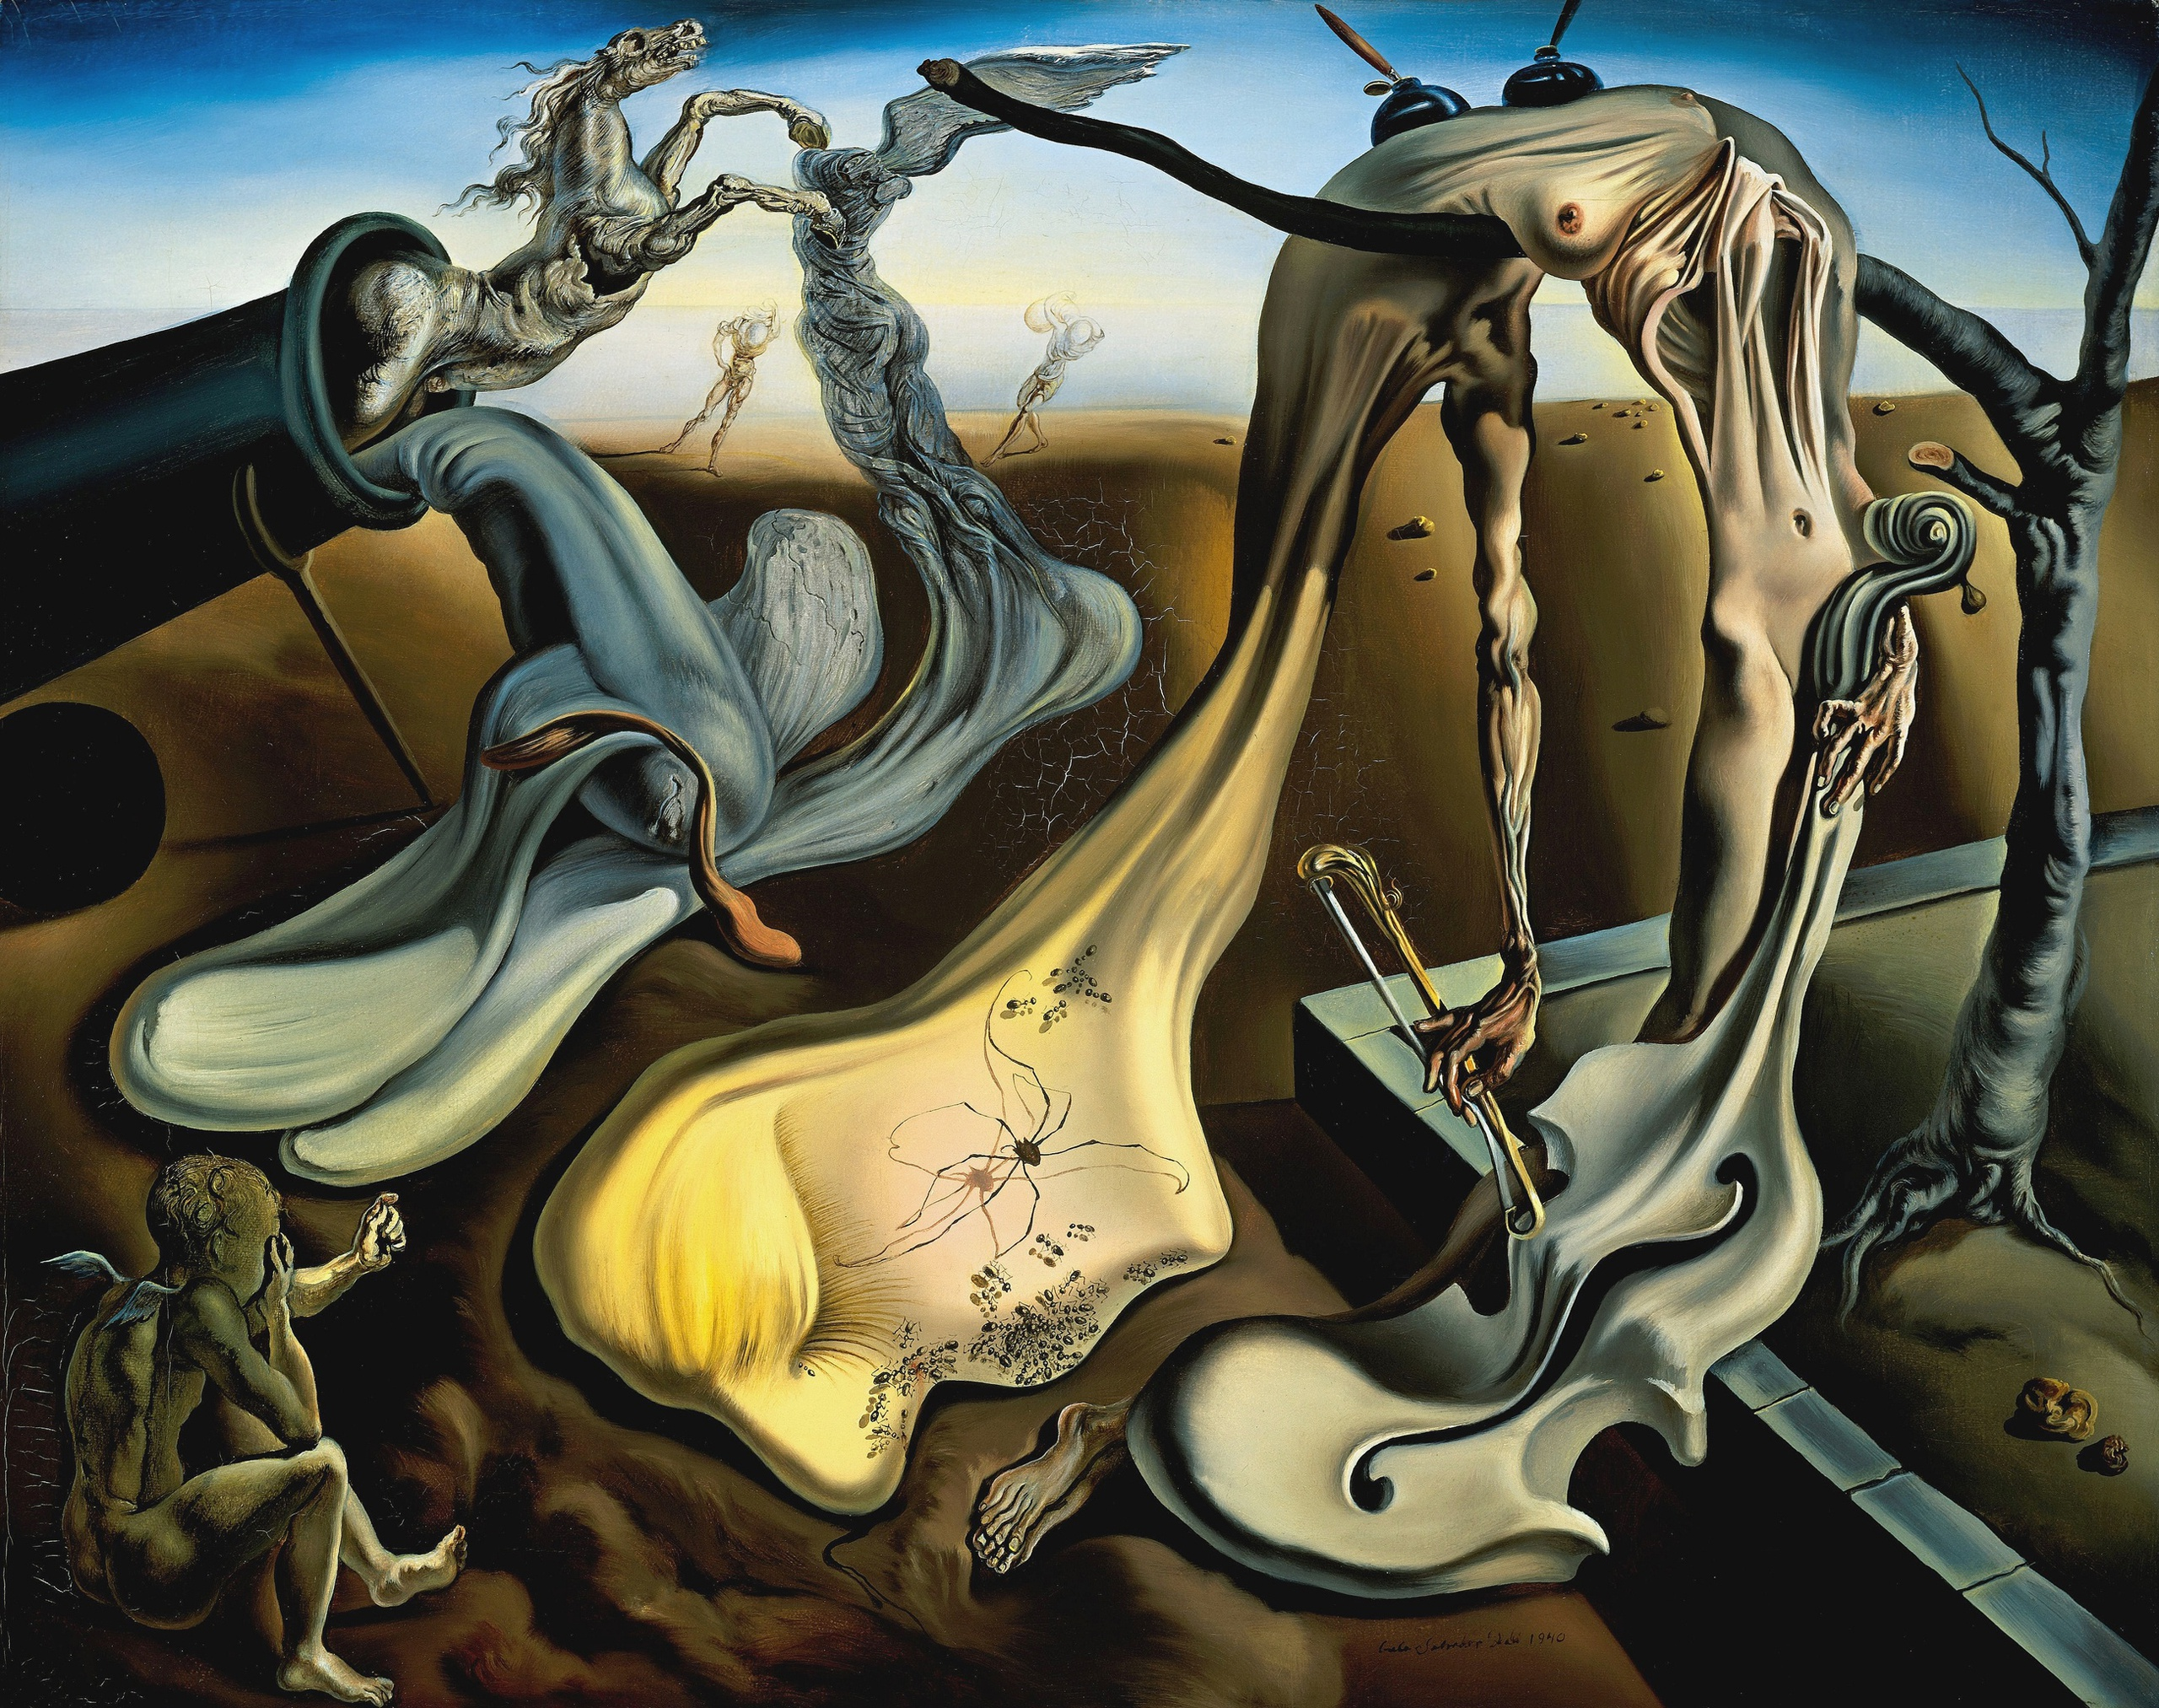 dali and surrealism André breton, author of the 1924 surrealist manifesto, was an influential theorizer of both dada and surrealism born in france, he emigrated to new york during world war ii, where he greatly influenced the abstract expressionists.